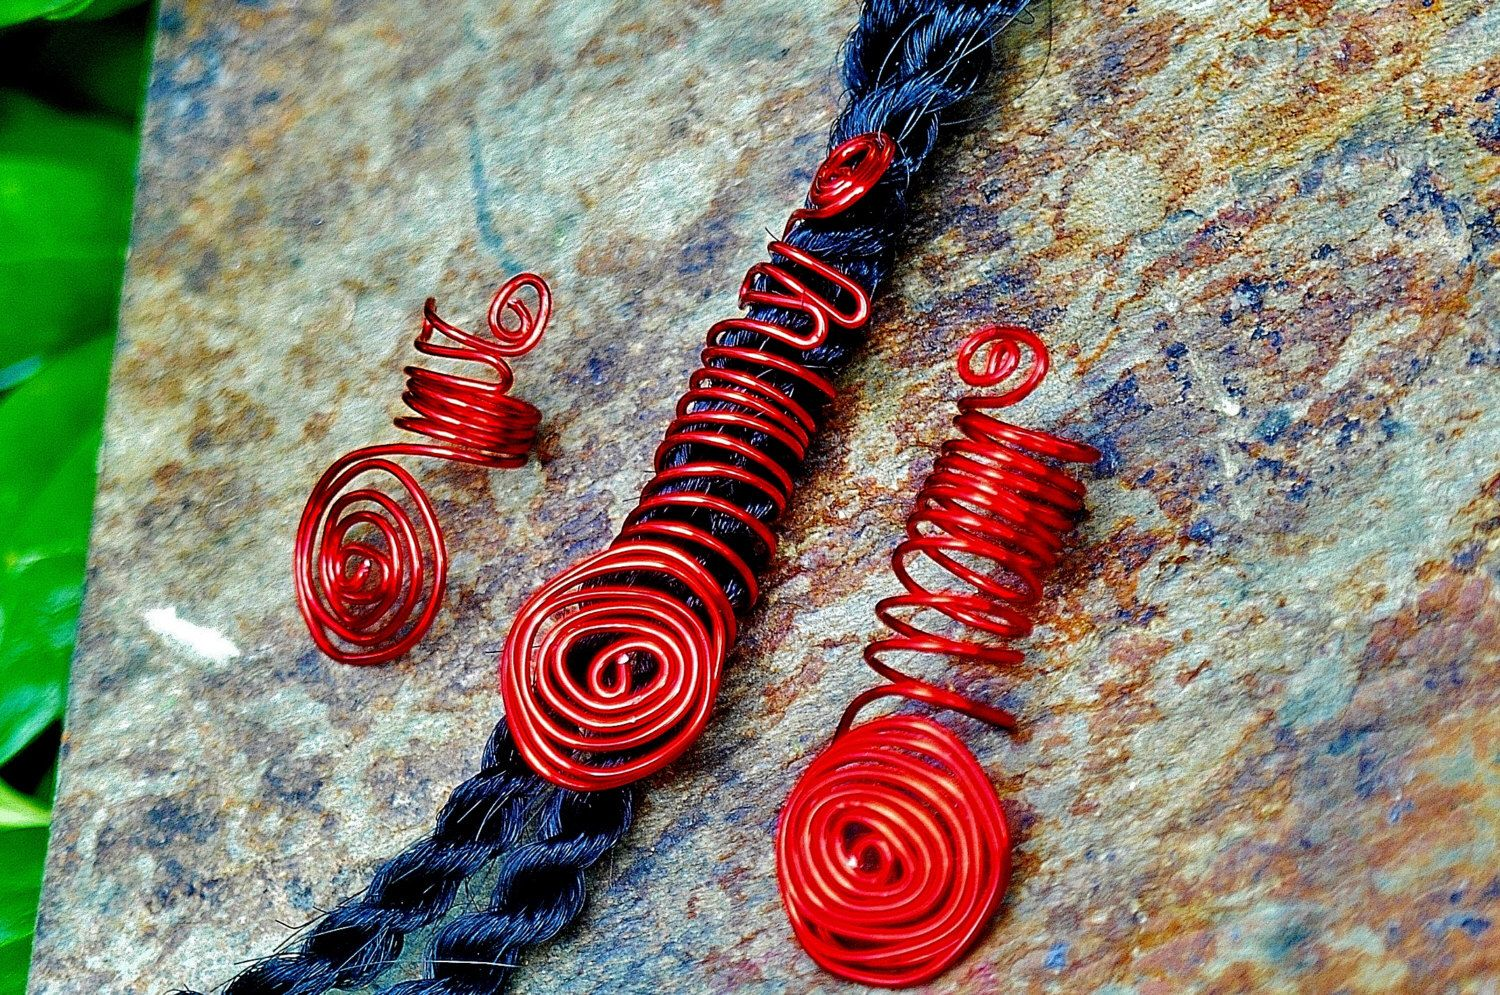 Loc Coils, Natural Hair Jewelry, Loc Beads, African Hair Jewelry, Locs, Red Loc Jewels, Loc Star, Dreadloc Jewelry, Locs, Locks, Loc Jewels by ZenCustomJewelry on Etsy https://www.etsy.com/listing/237402501/loc-coils-natural-hair-jewelry-loc-beads